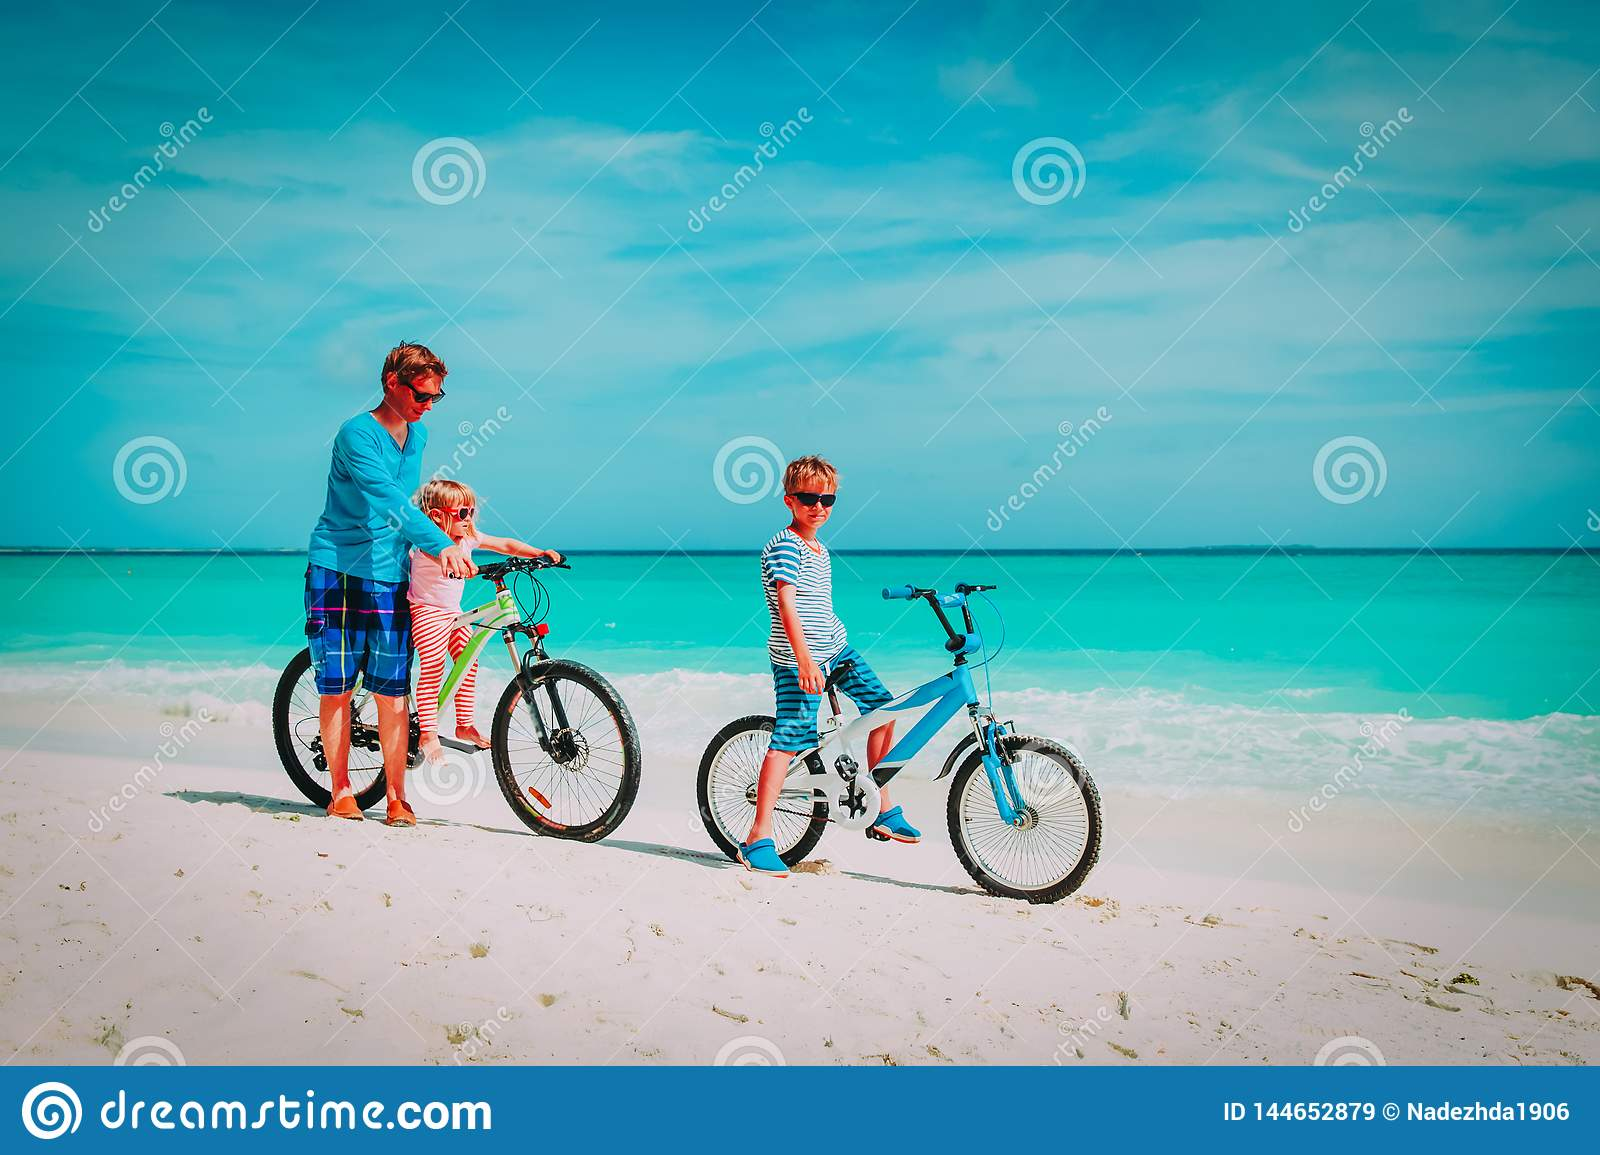 Father with little son and daughter biking on beach